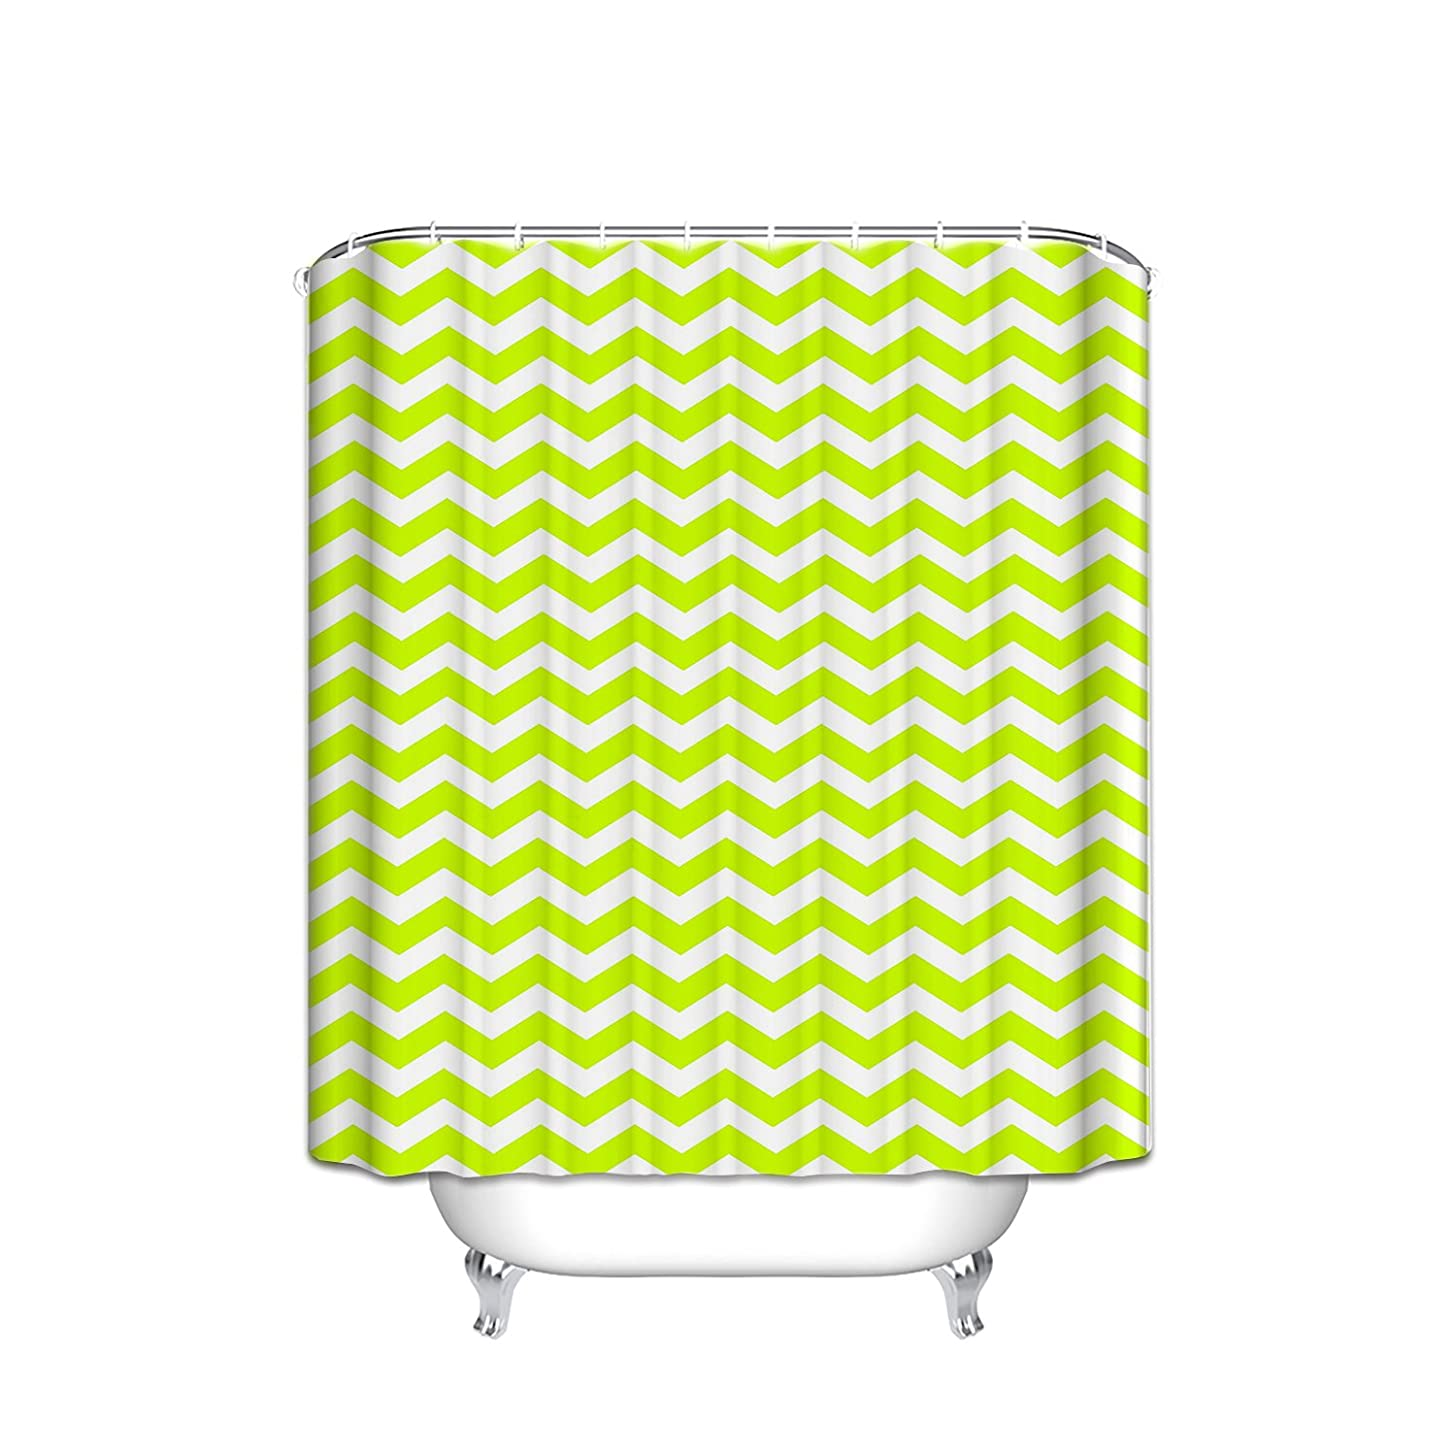 JANNINSE Geometric Patterned Waterproof 100% Polyester Fabric Long Shower Curtain For Bathroom,Fluorescent Green Zig Zag Stripes Pattern Print Design, 60